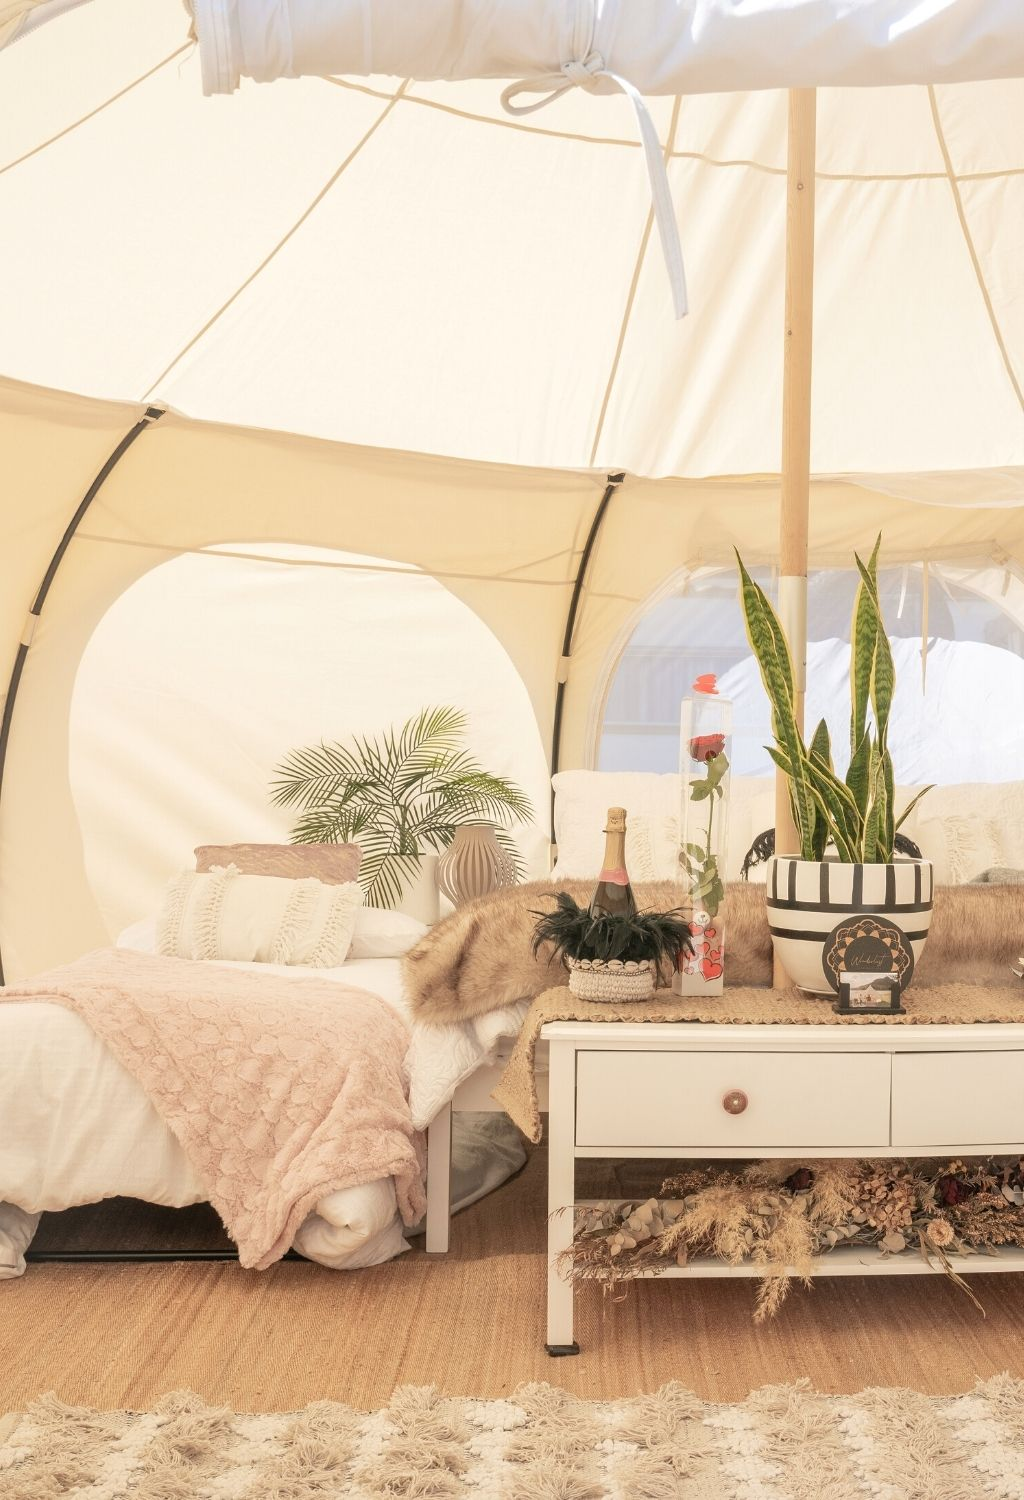 Staying in a beautiful glamping tent is a fun way to experience Valle de Guadalupe, Baja